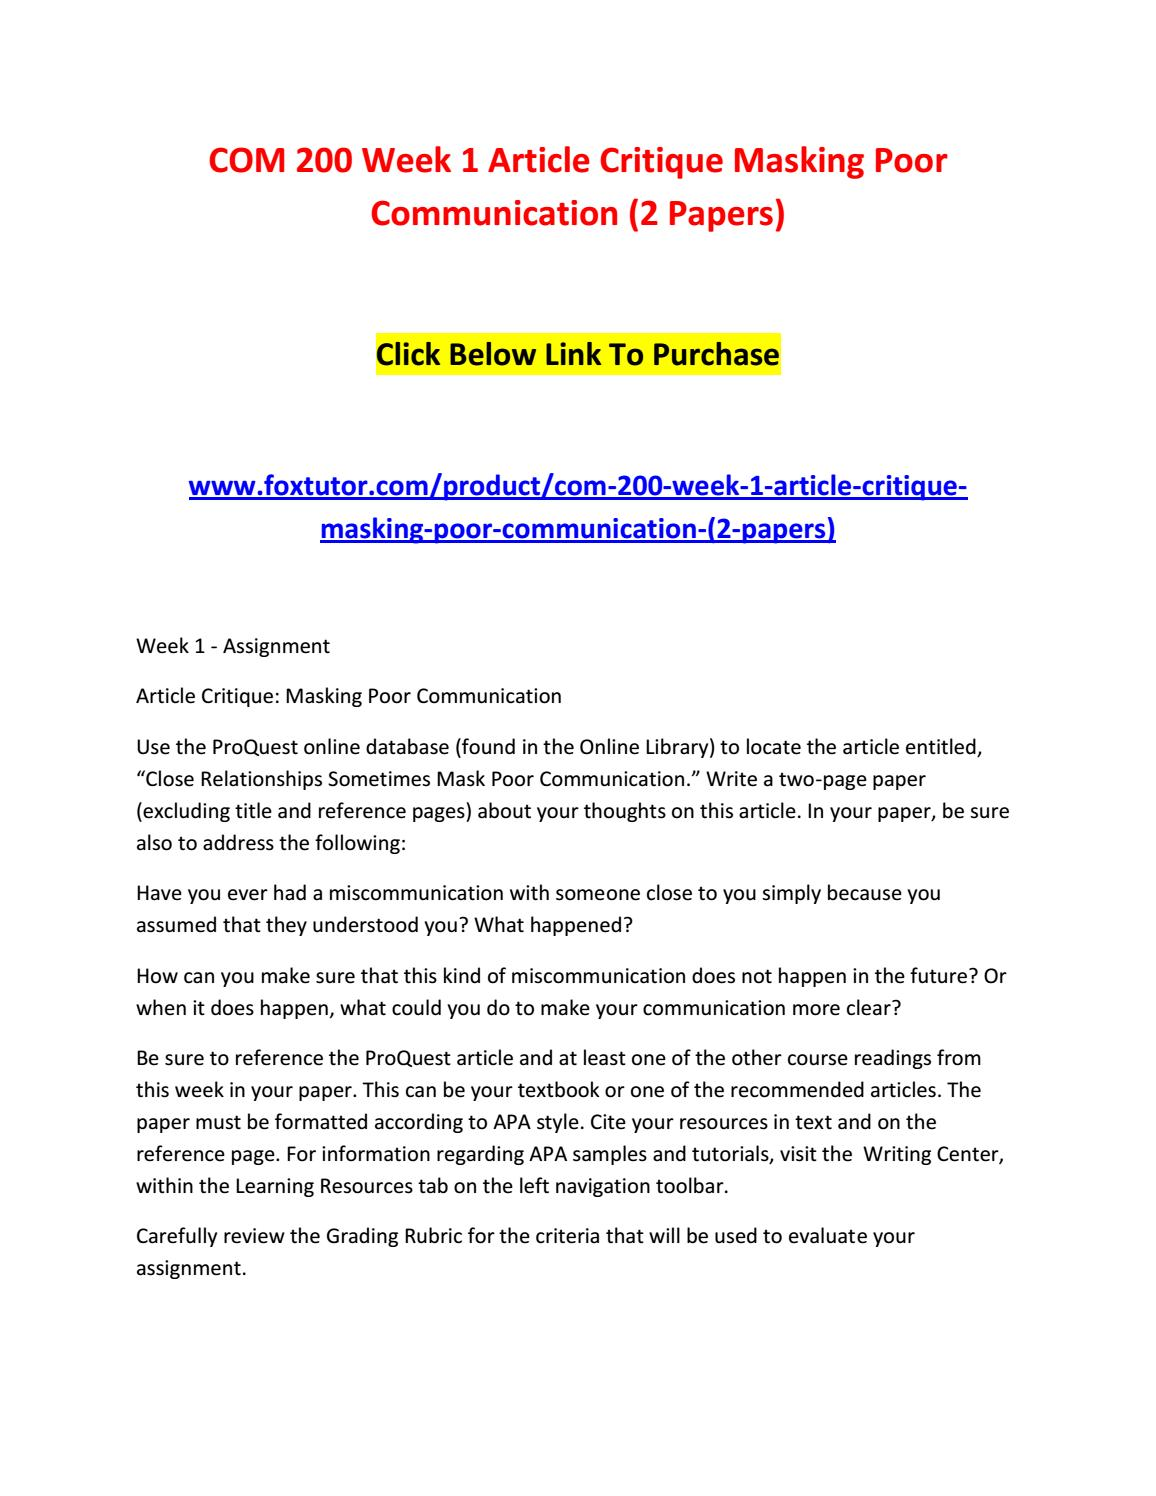 article critique masking poor communication essay Article critique: masking poor communication after reading this article close relationship sometimes mask poor communication it bring up a lot of important questions that most people never consider in their daily communication.